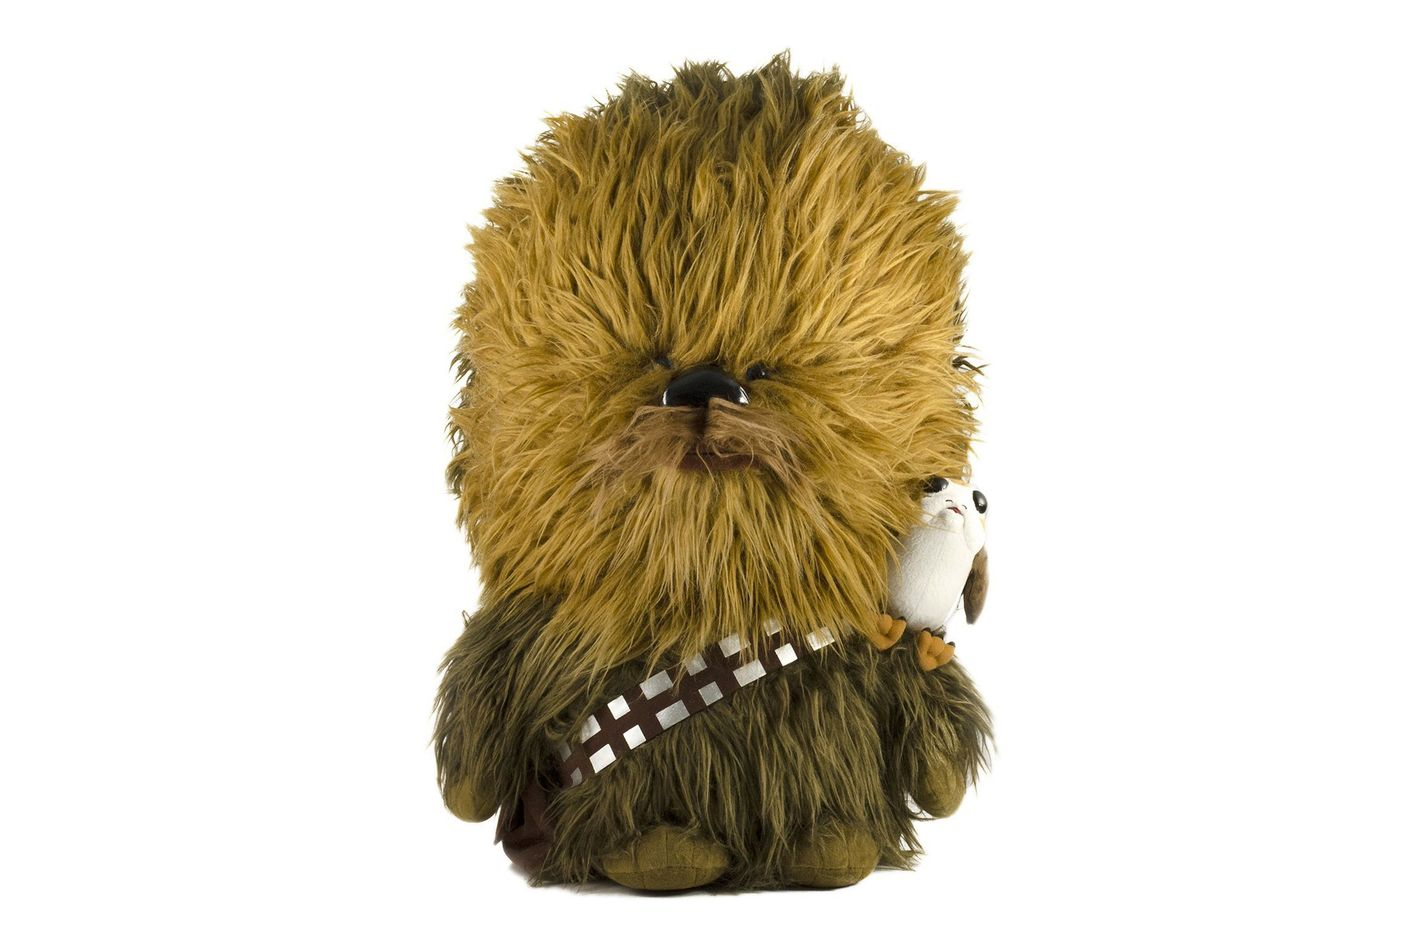 Star Wars: The Last Jedi Talking Chewbacca and Porg Plush Toy